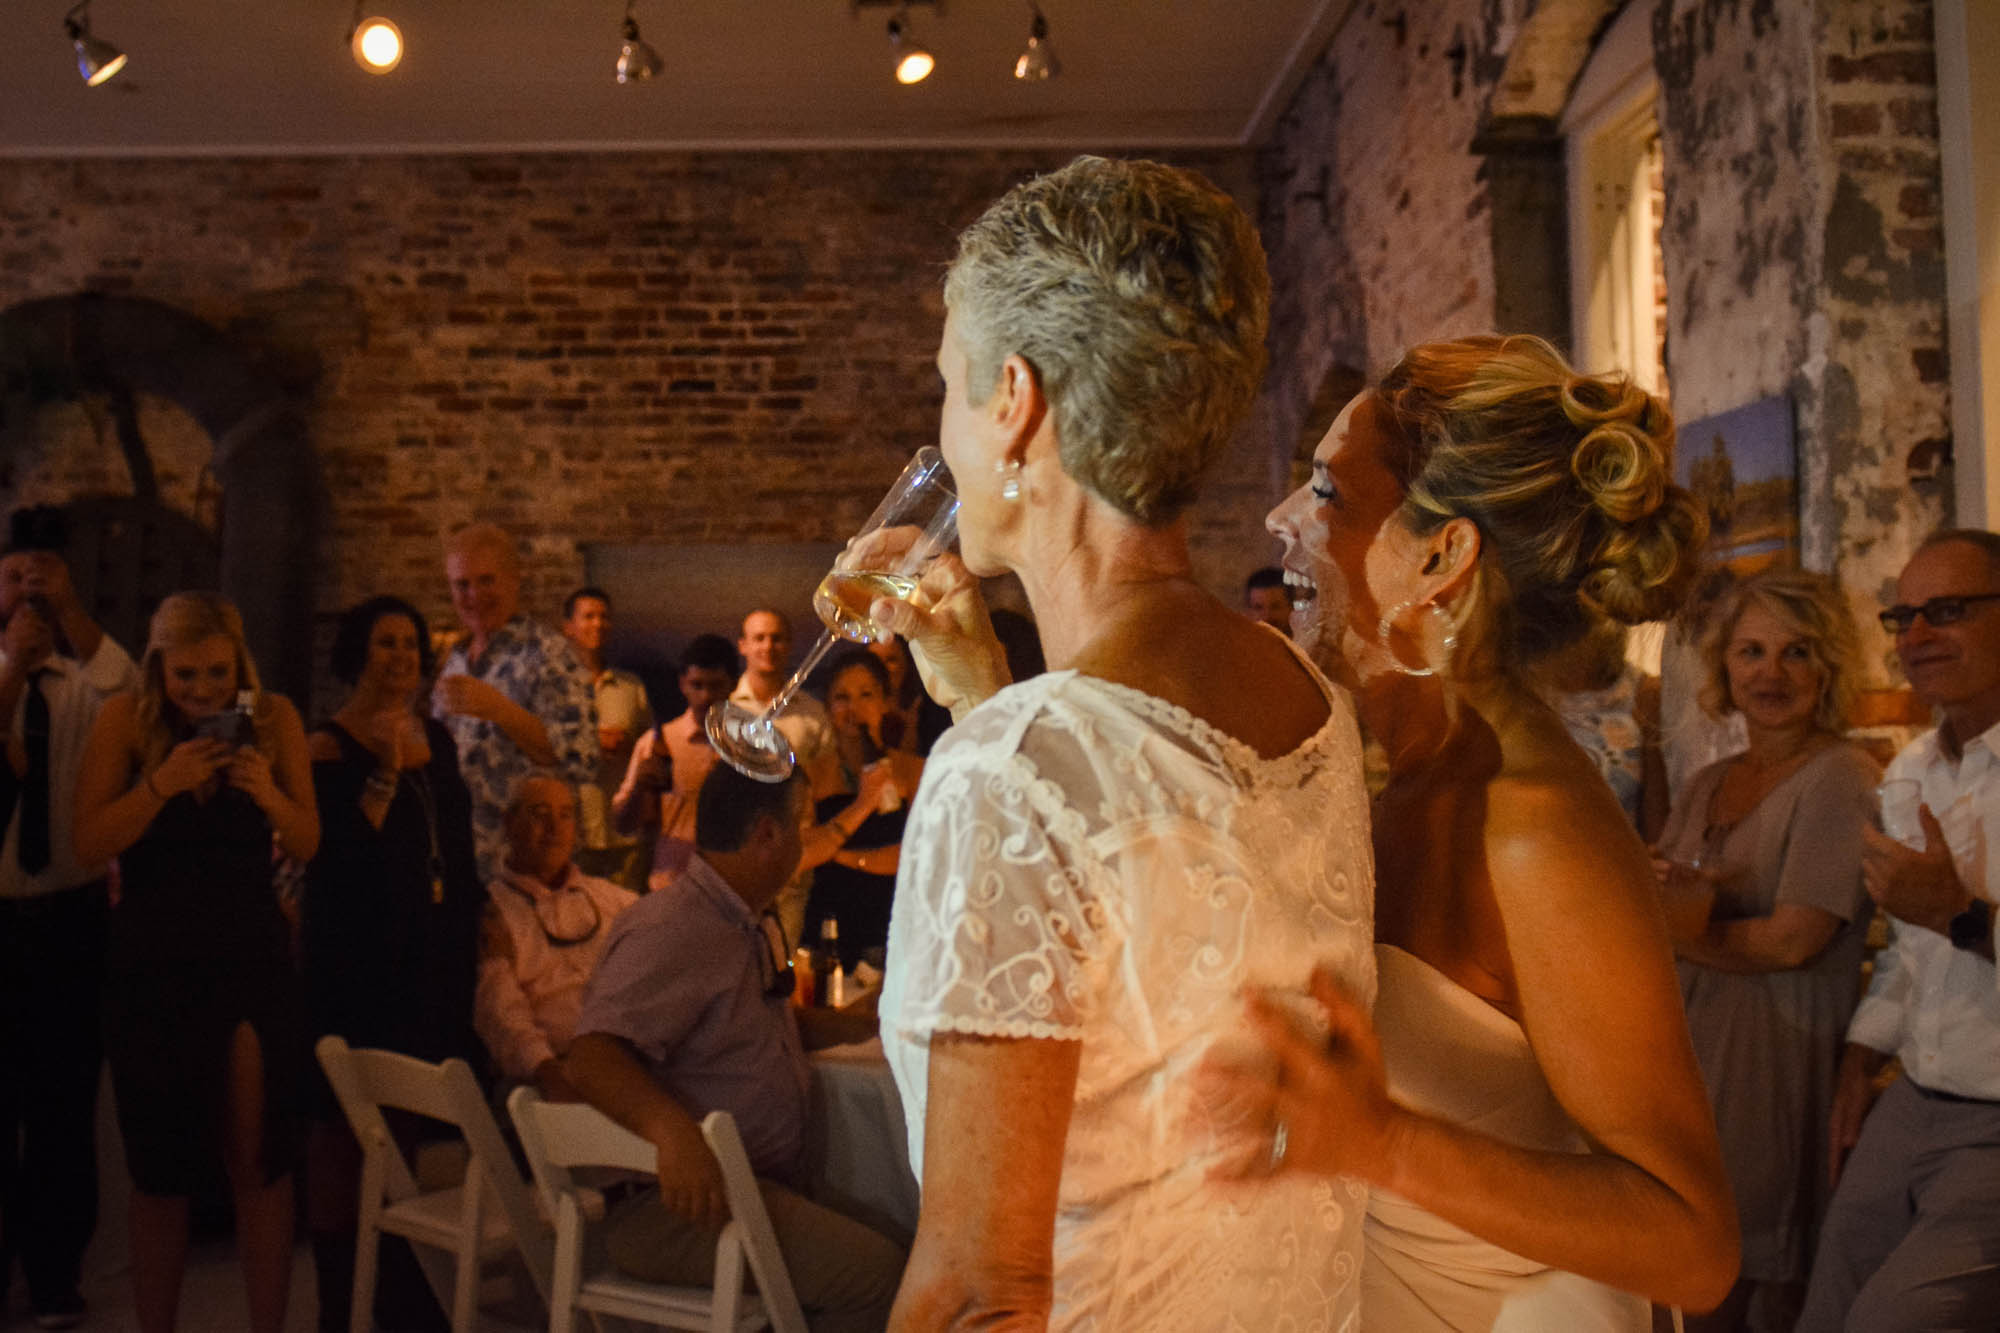 Surprise Lesbian Wedding - Dancing With Her (1)